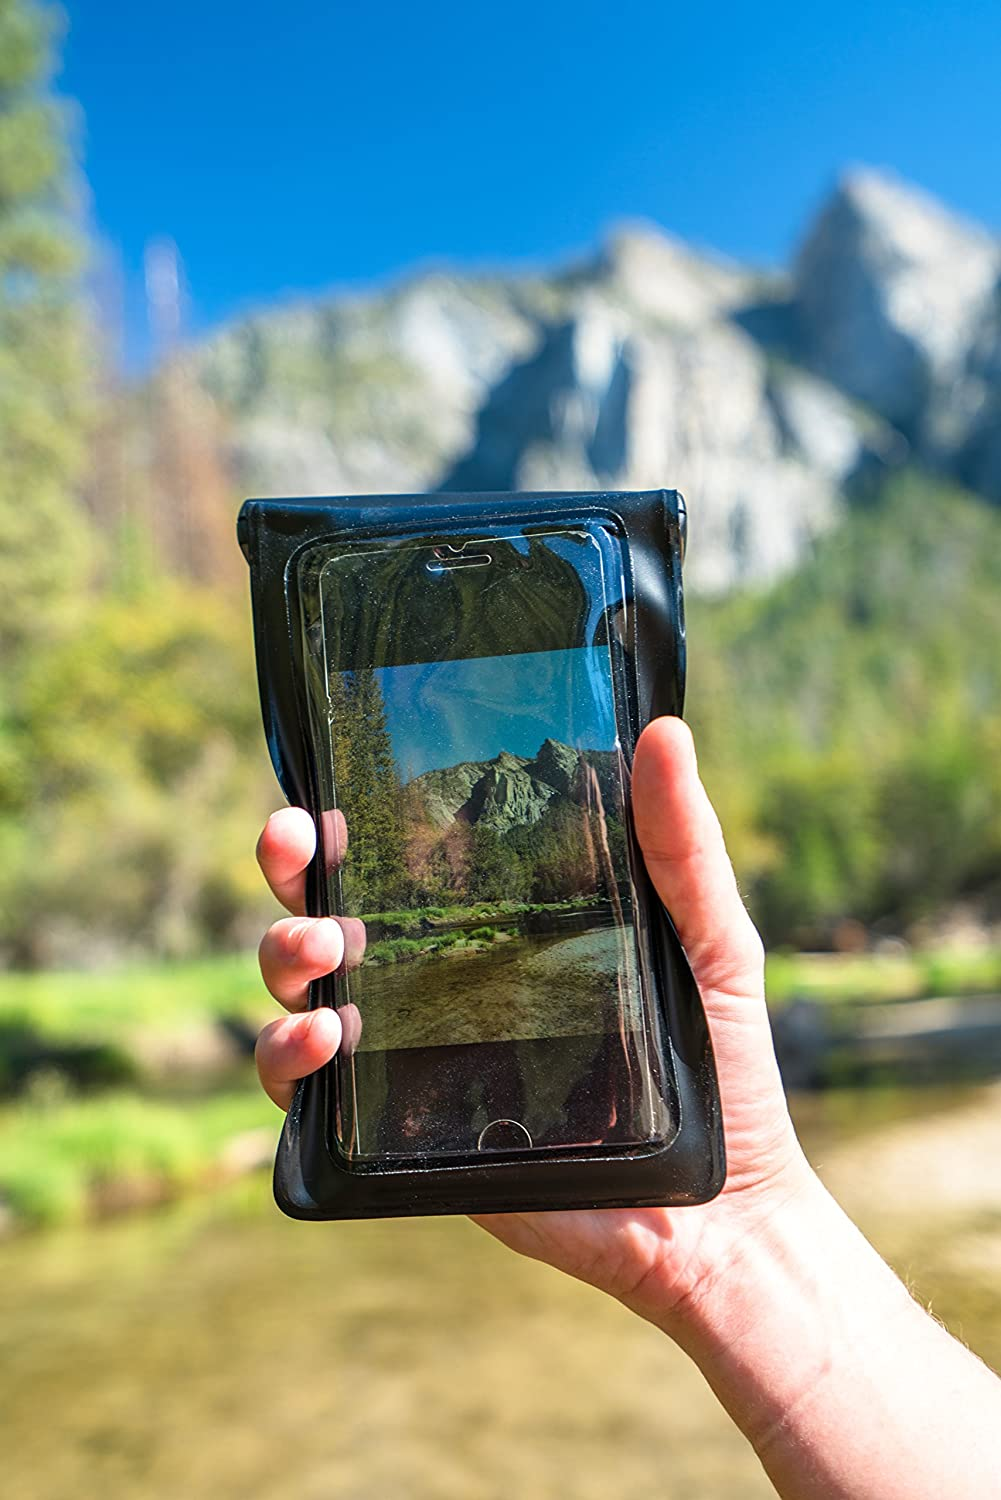 Waterproof Phone Case made our CampingForFoodies hand-selected list of 100+ Camping Stocking Stuffers For RV And Tent Campers!